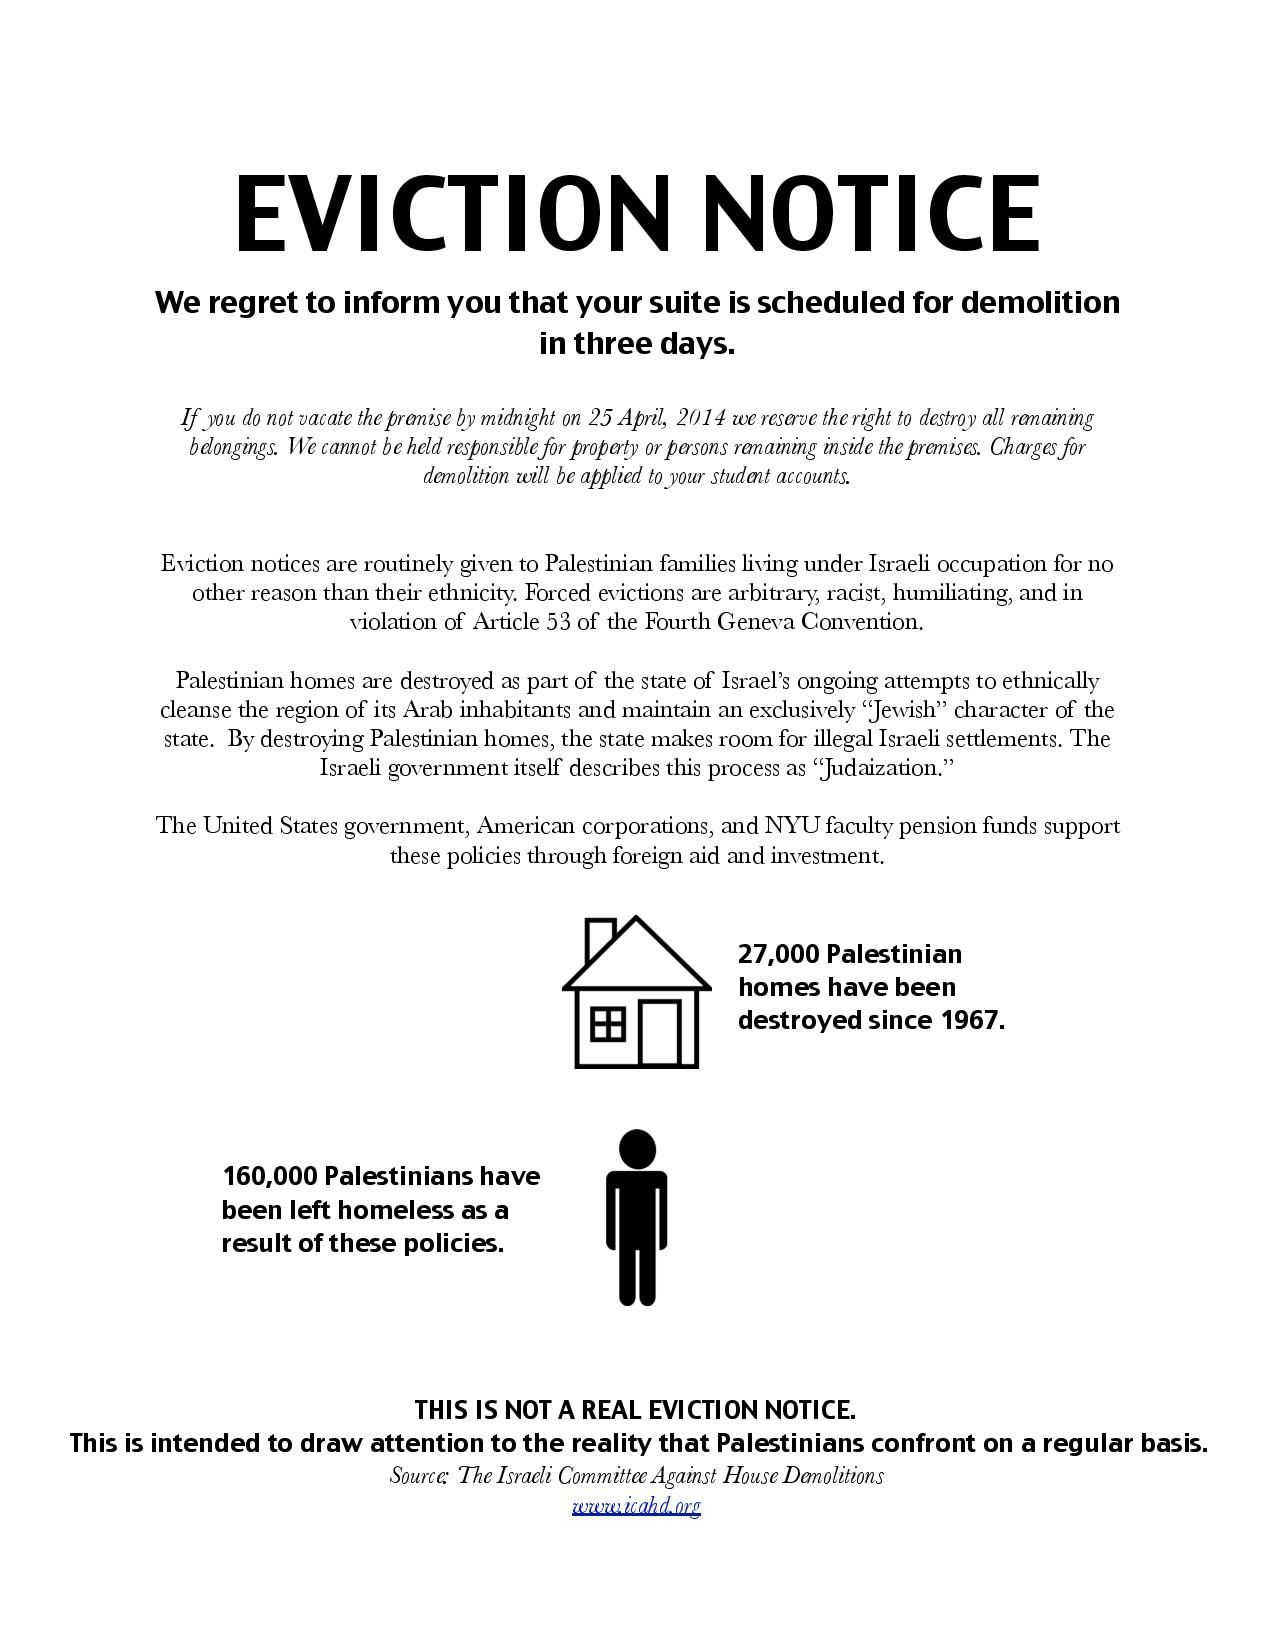 Statement regarding nyu sjps mock eviction notice action nyu explore eviction notice ethical issues and more spiritdancerdesigns Choice Image